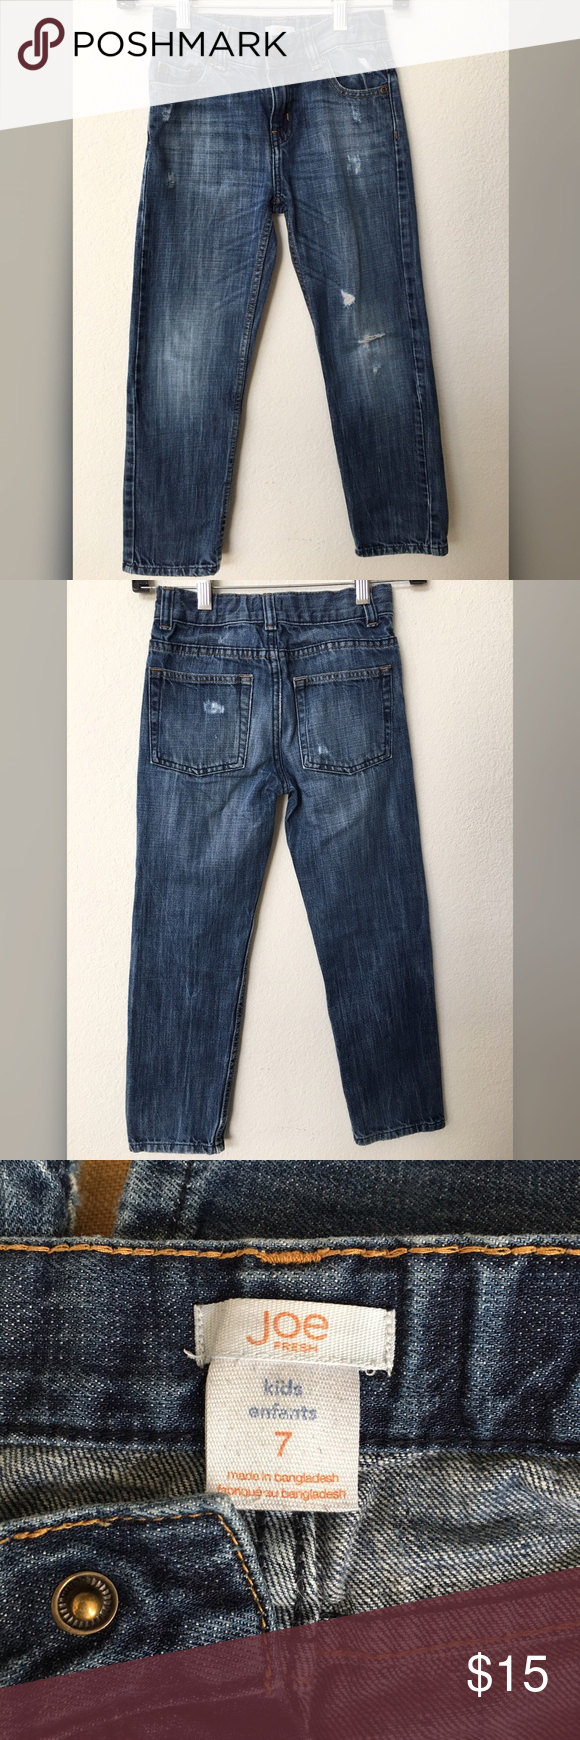 Joe Fresh kids jeans good condition jeans come from a smoke and pet free home Joe Fresh Bottoms Jeans